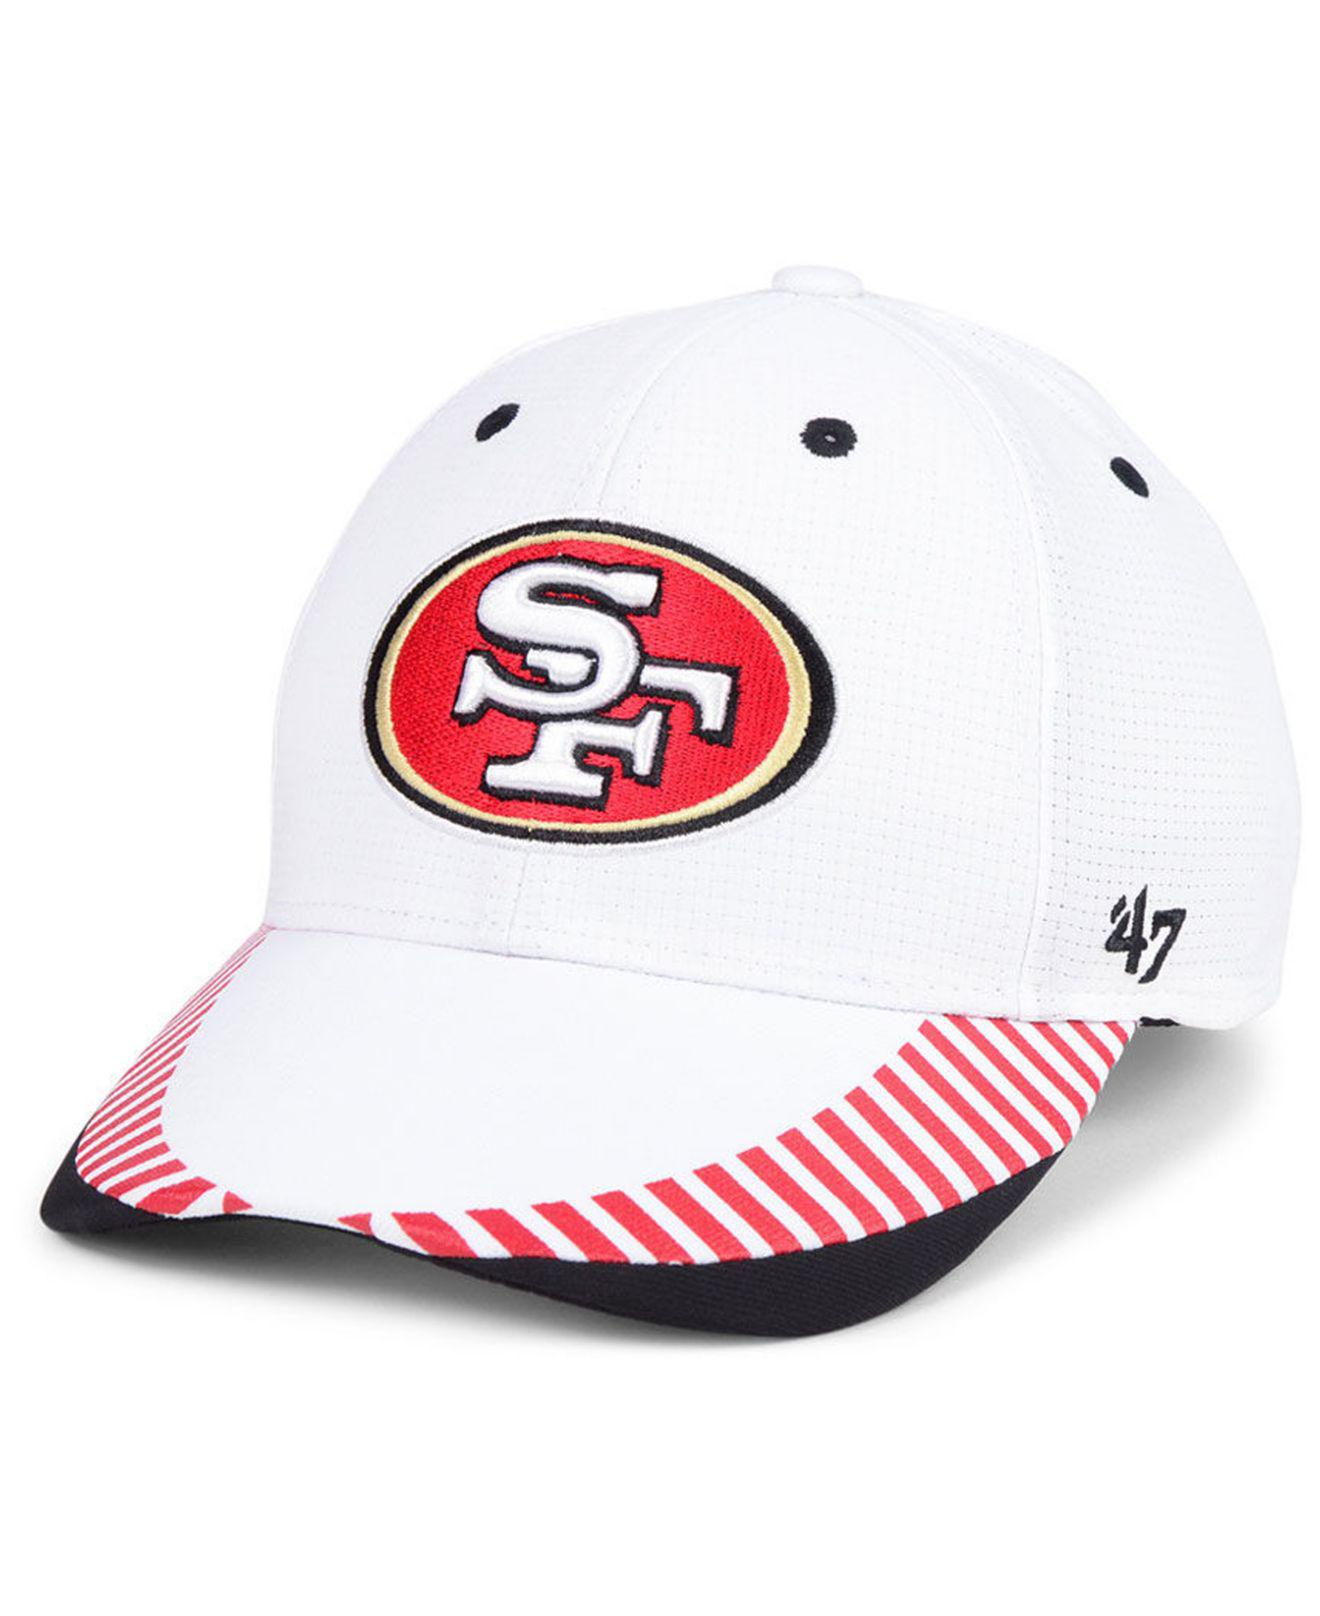 promo code 7f585 ce6c1 ... cheapest 47 brand red san francisco 49ers tantrum contender flex cap  for men lyst. view